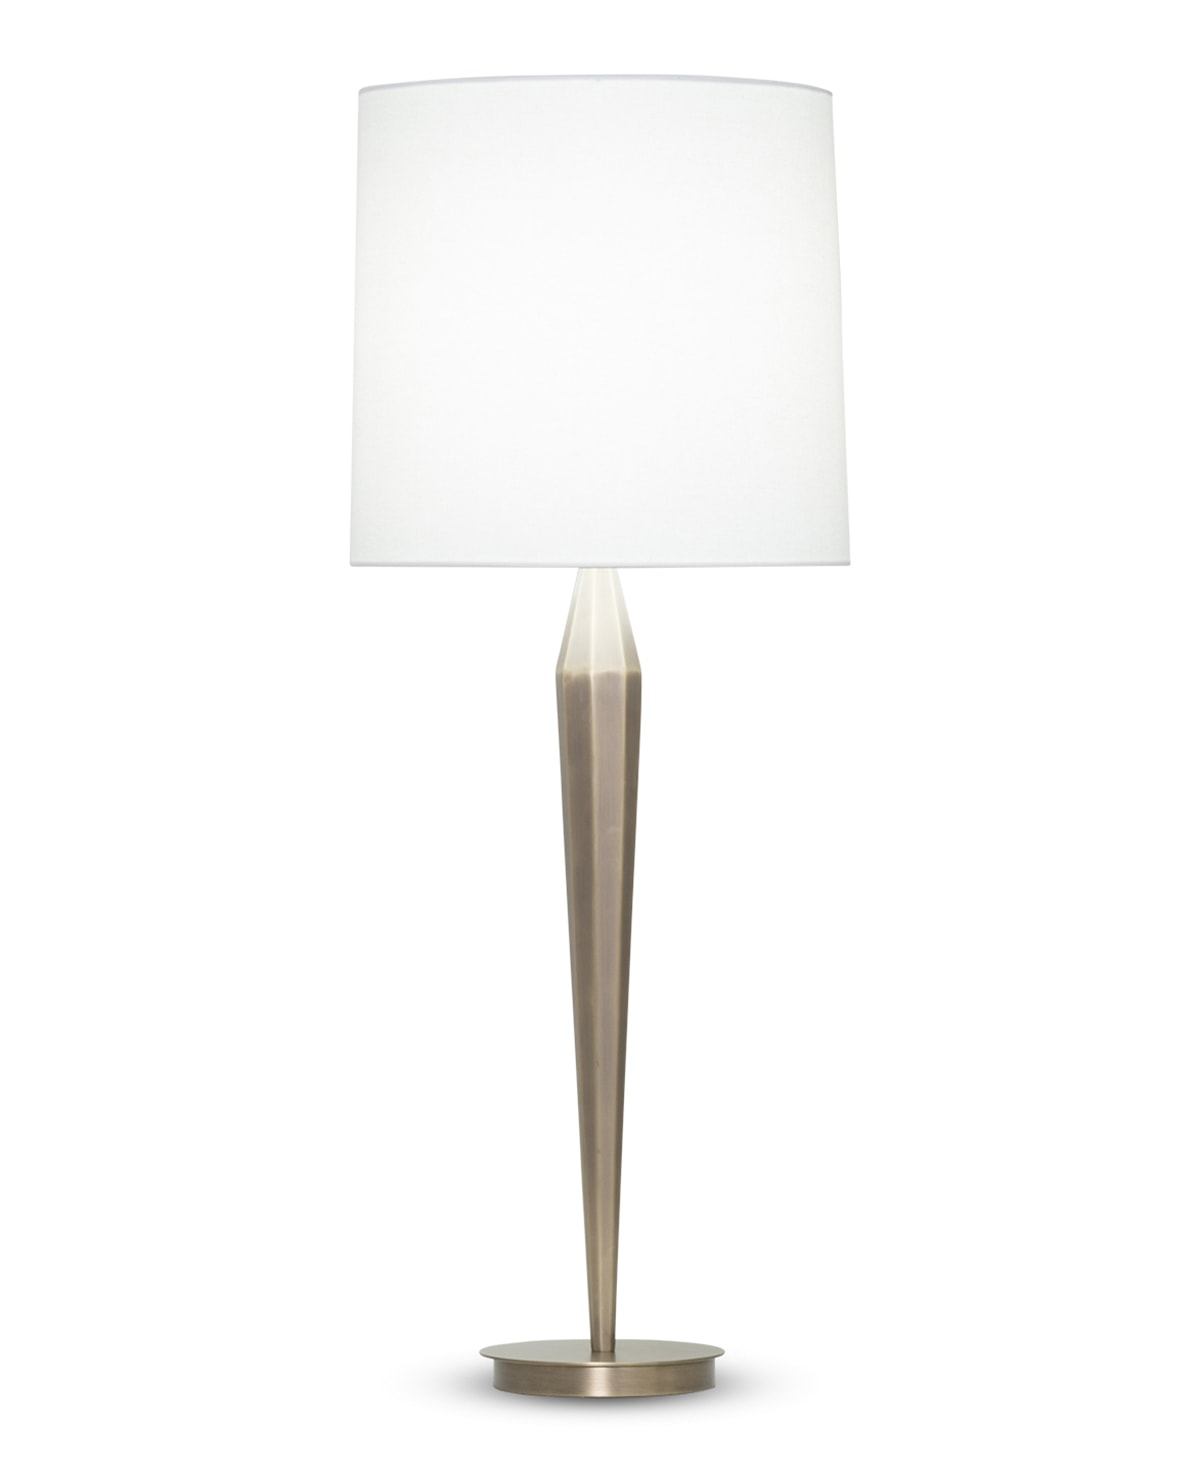 FlowDecor Chloe Table Lamp in metal with antique brass finish and off-white linen tapered drum shade (# 3920)